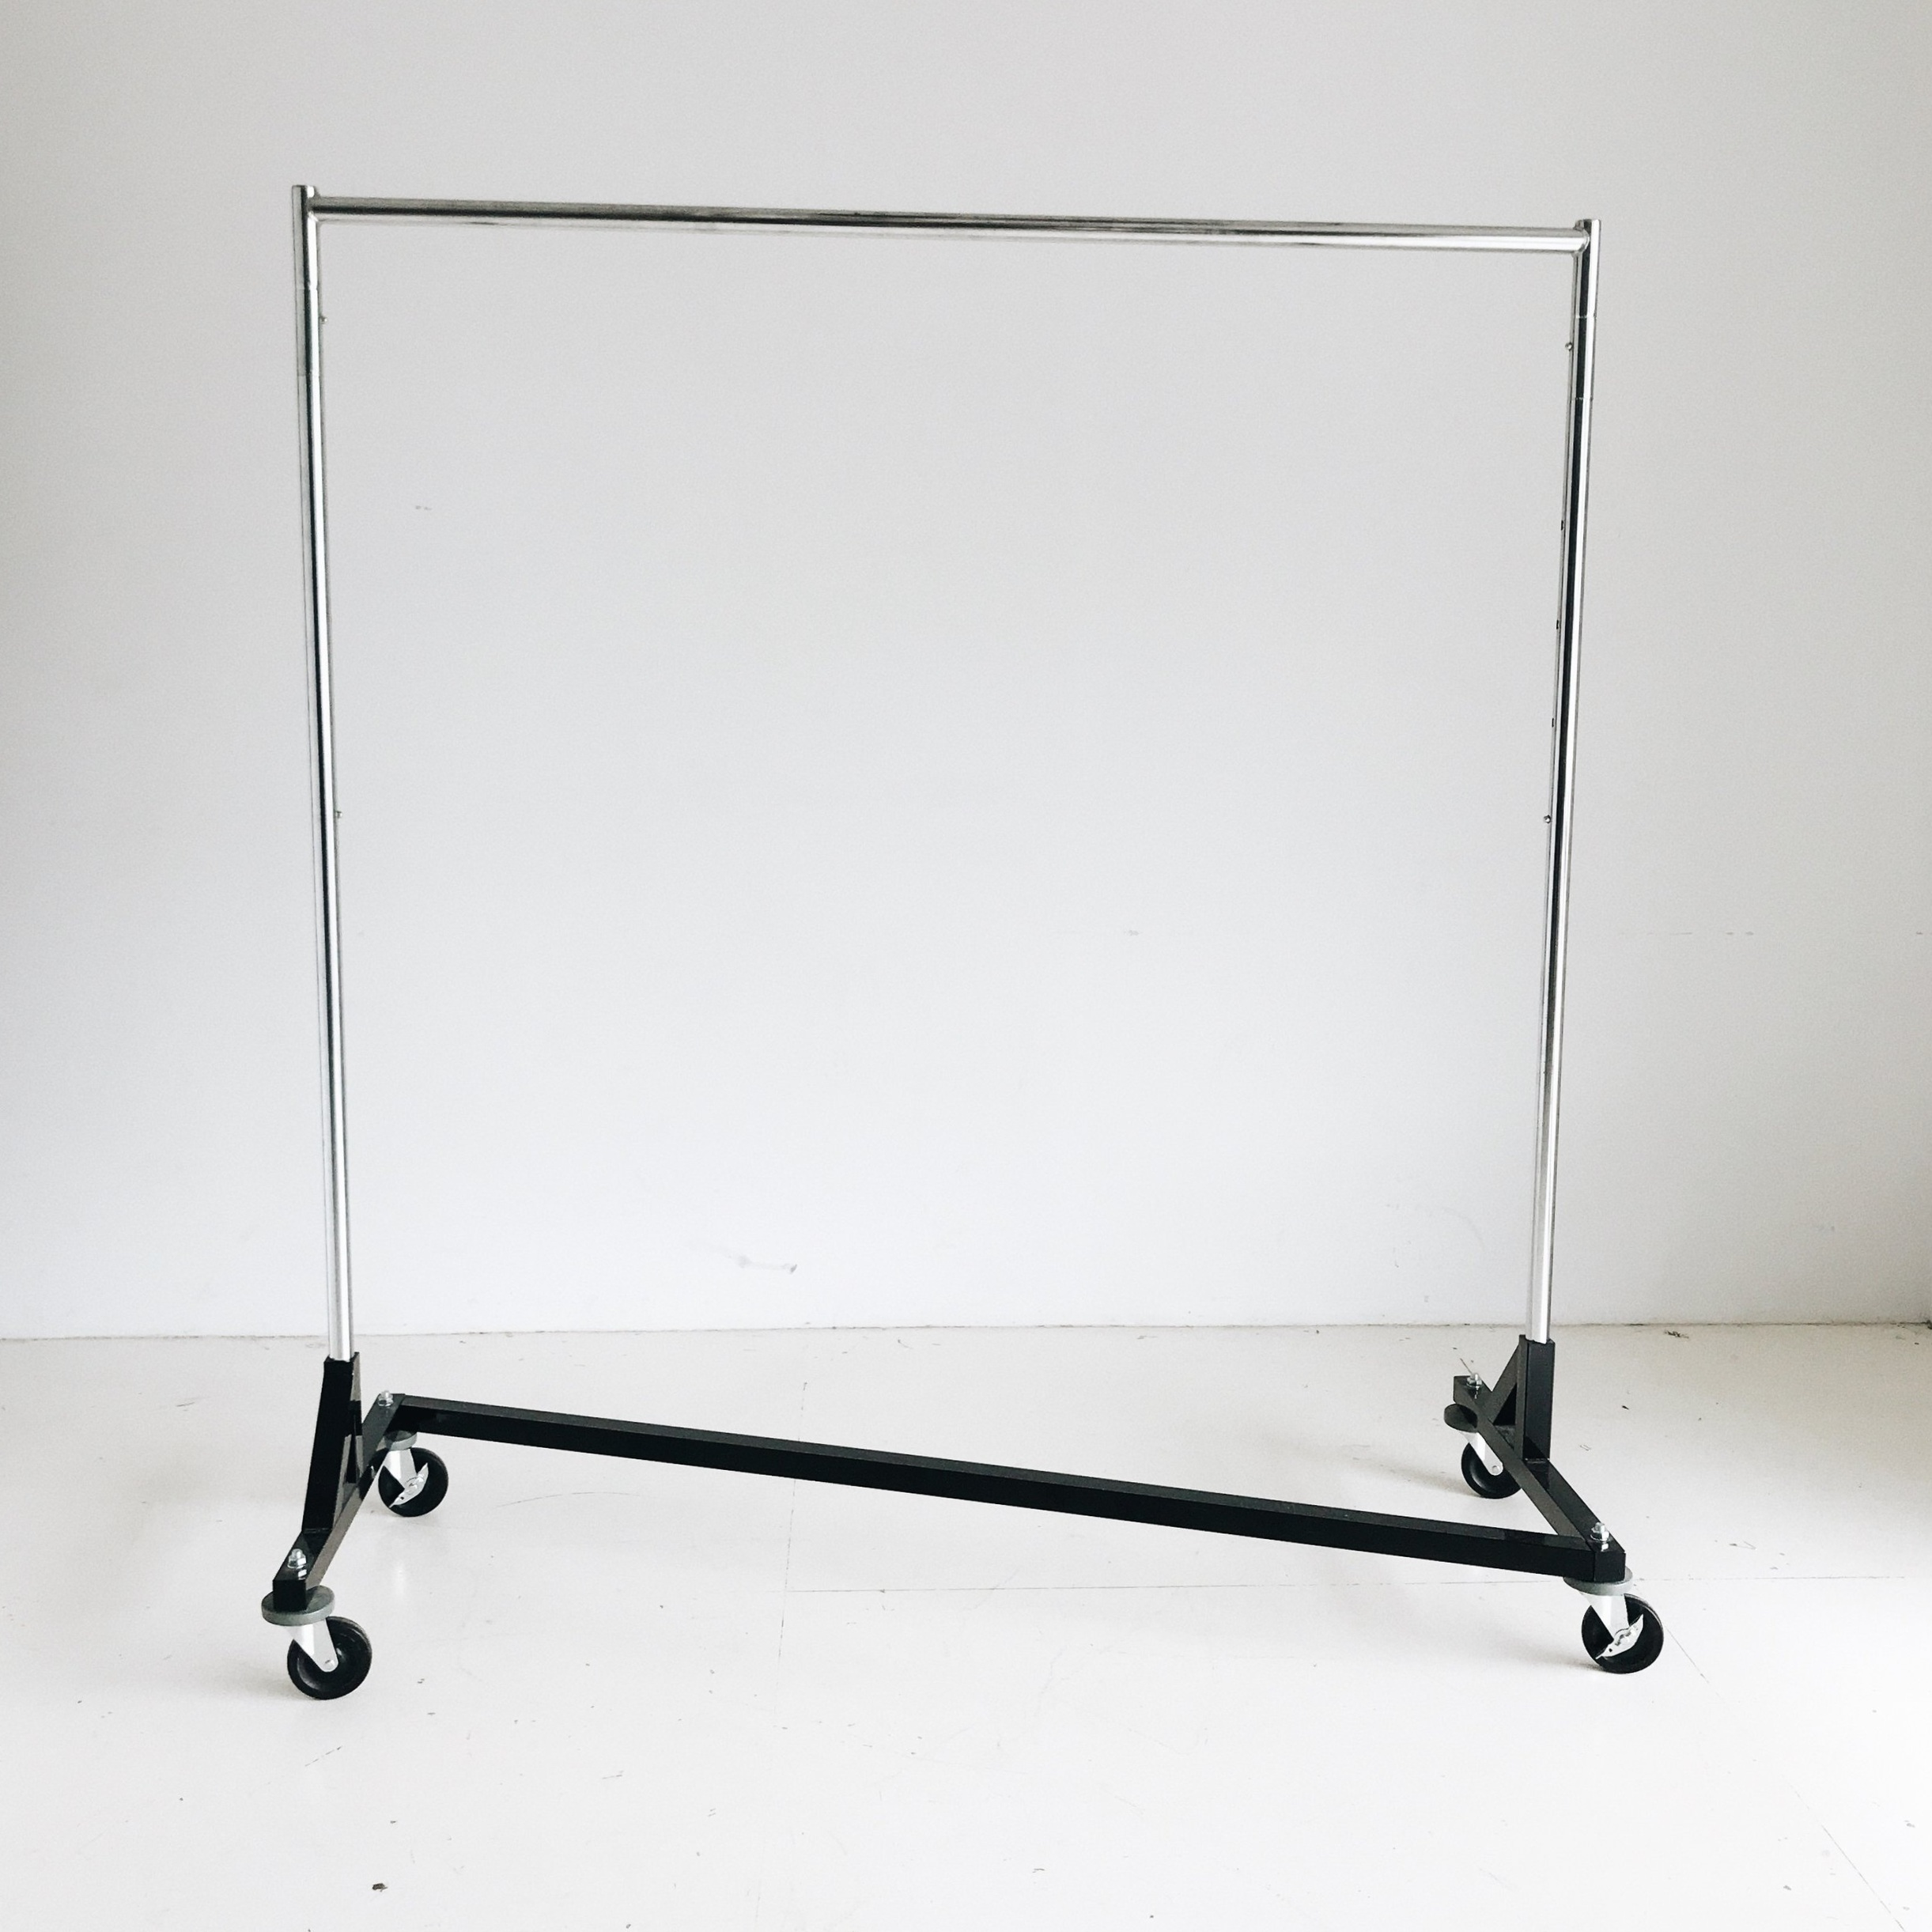 (2) Rolling Wardrobe Racks   Price: $35 each or $50 for both